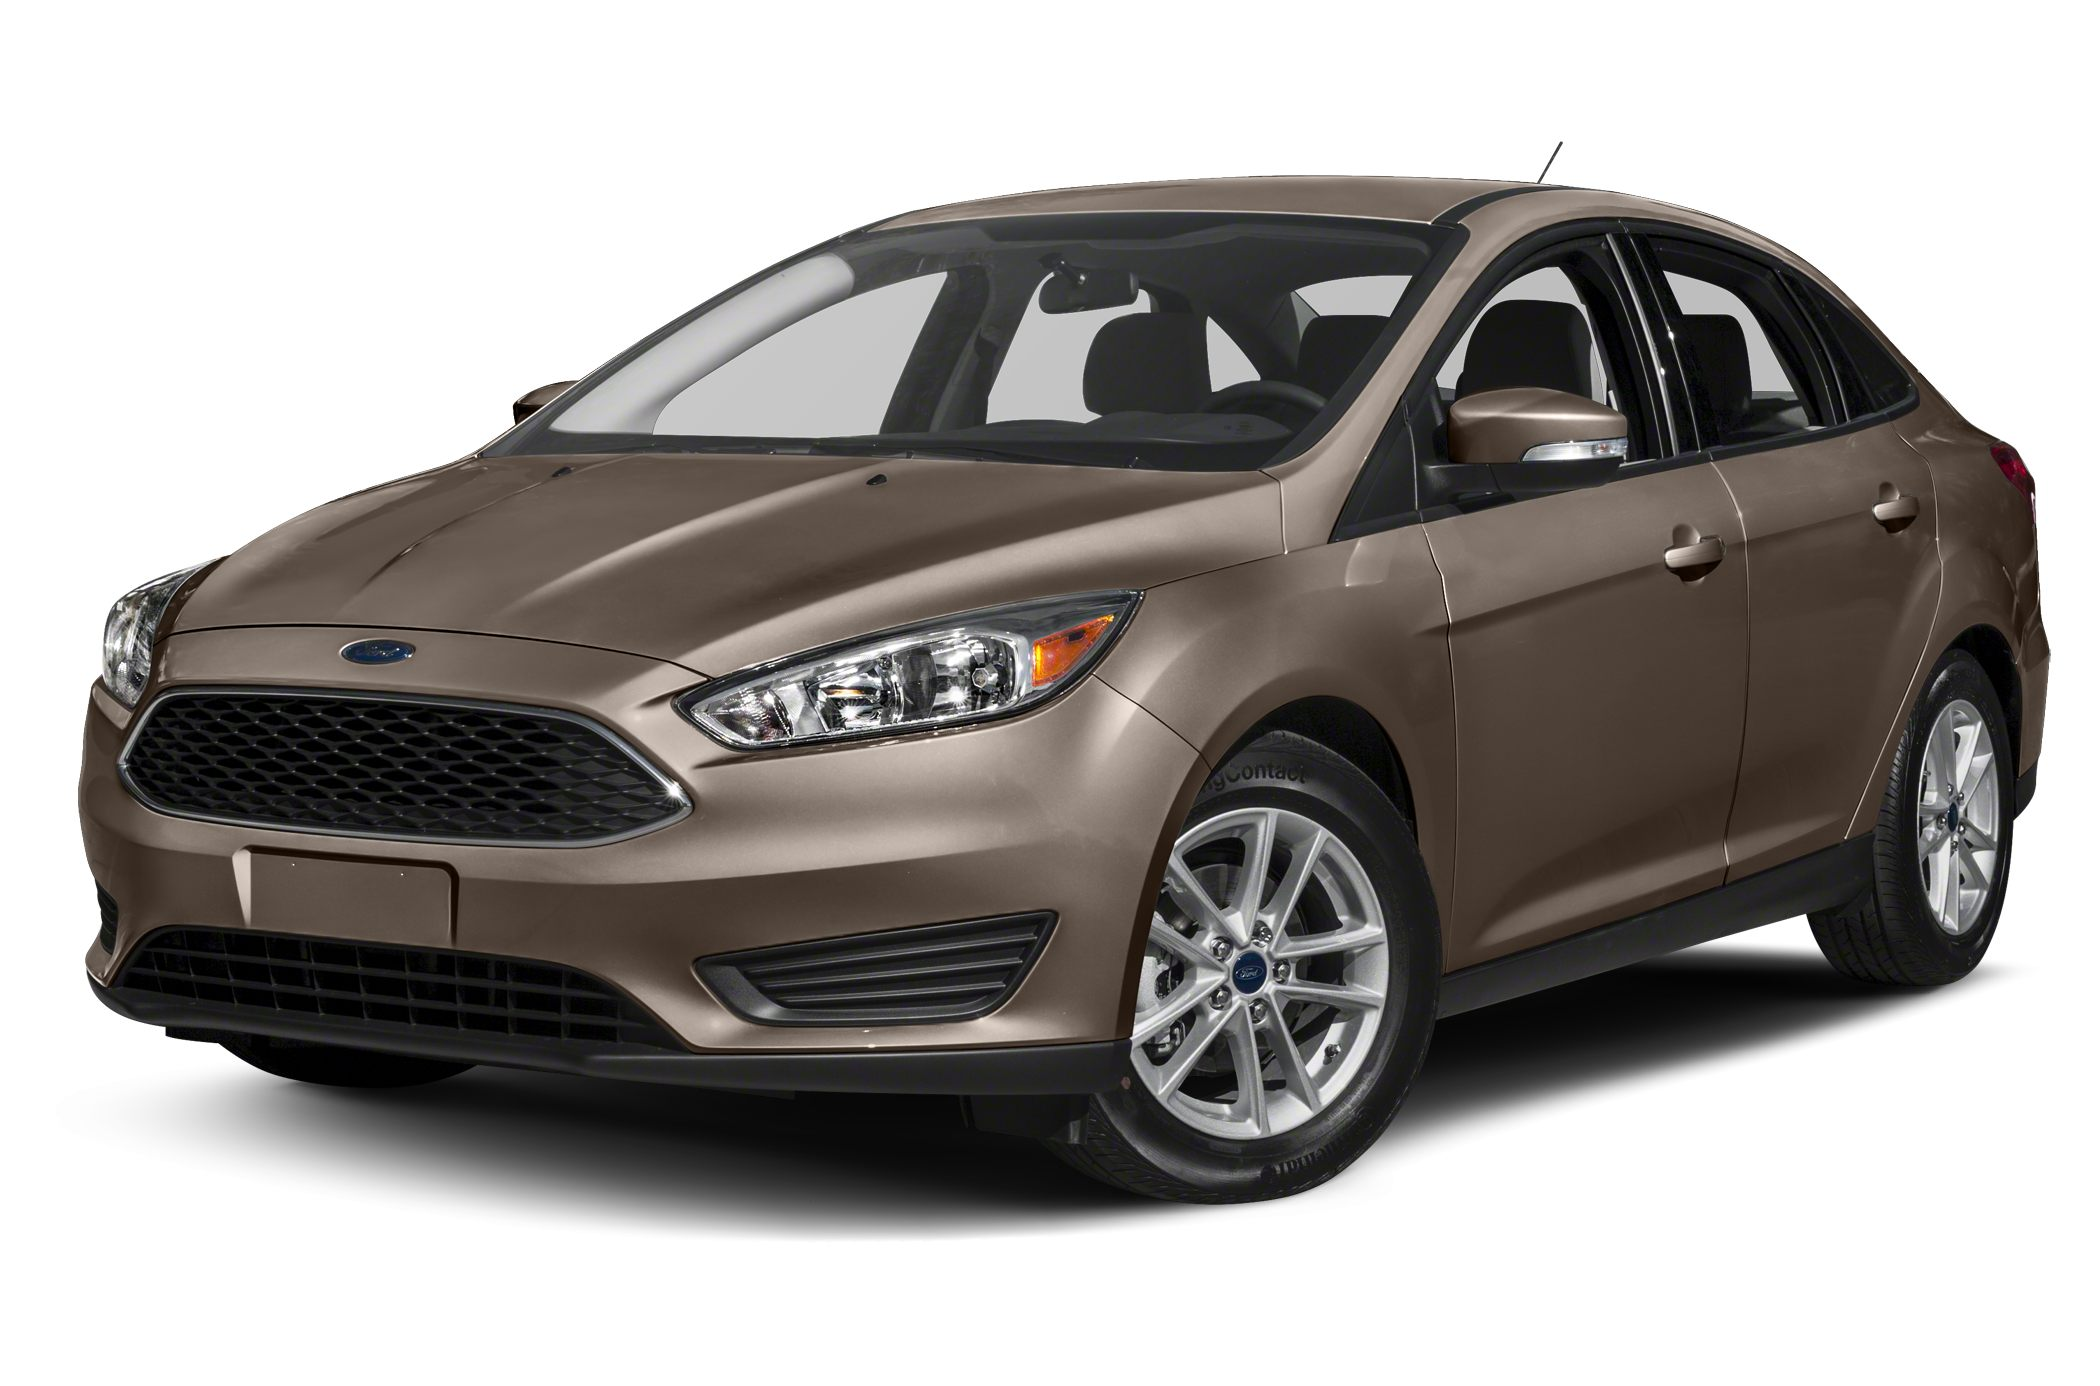 2015 Ford Focus SE Hatchback for sale in Tallmadge for $20,880 with 0 miles.